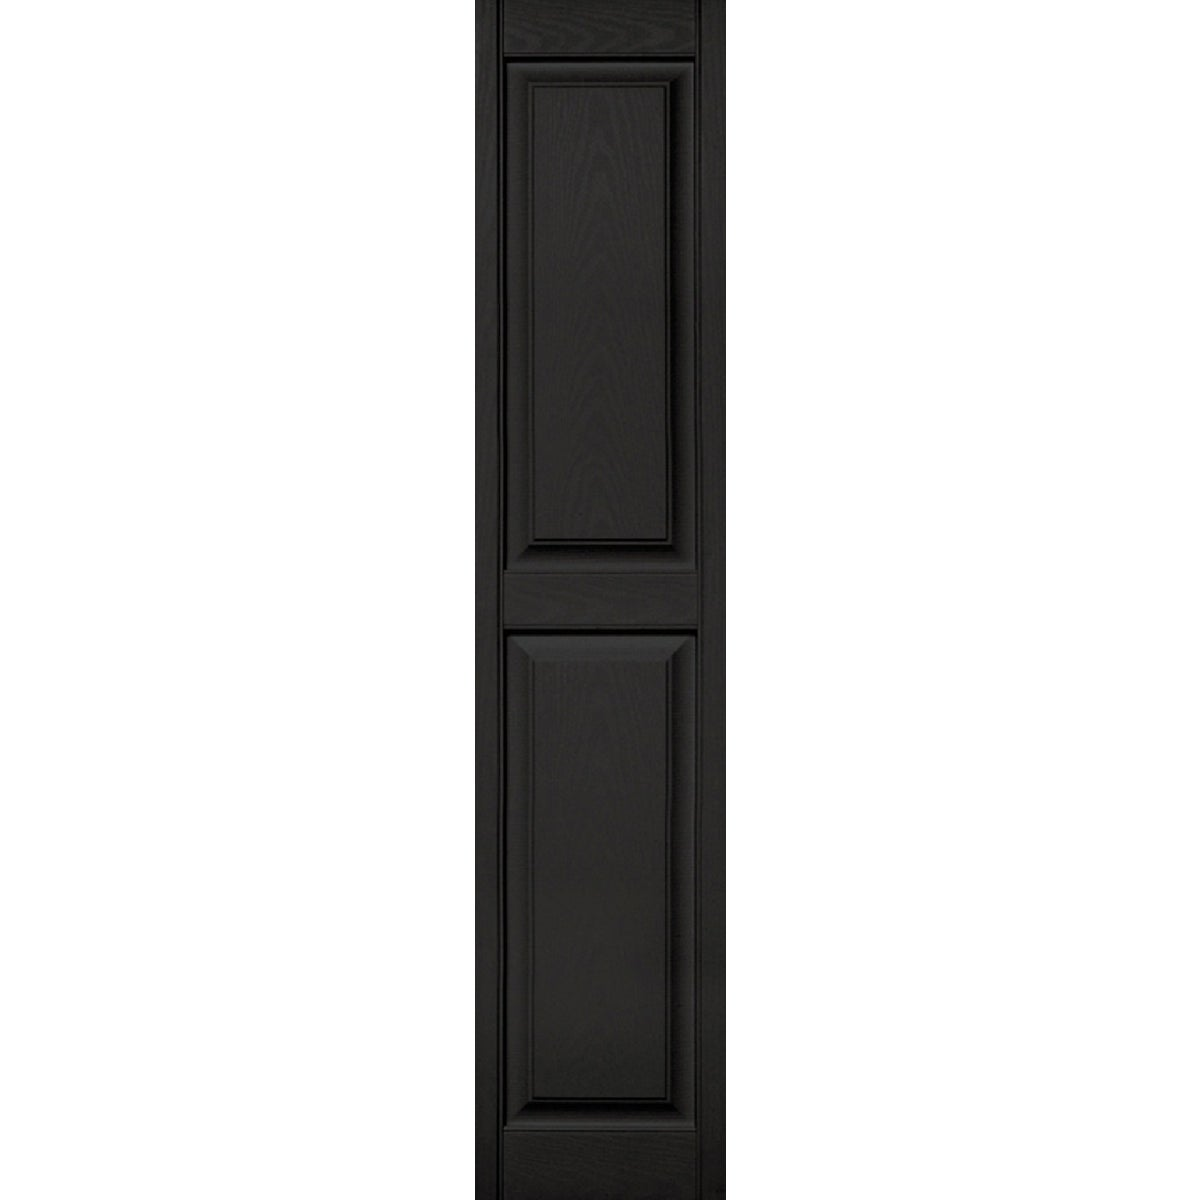 15X71 BLK PANEL SHUTTER - 040140071002 by The Tapco Group